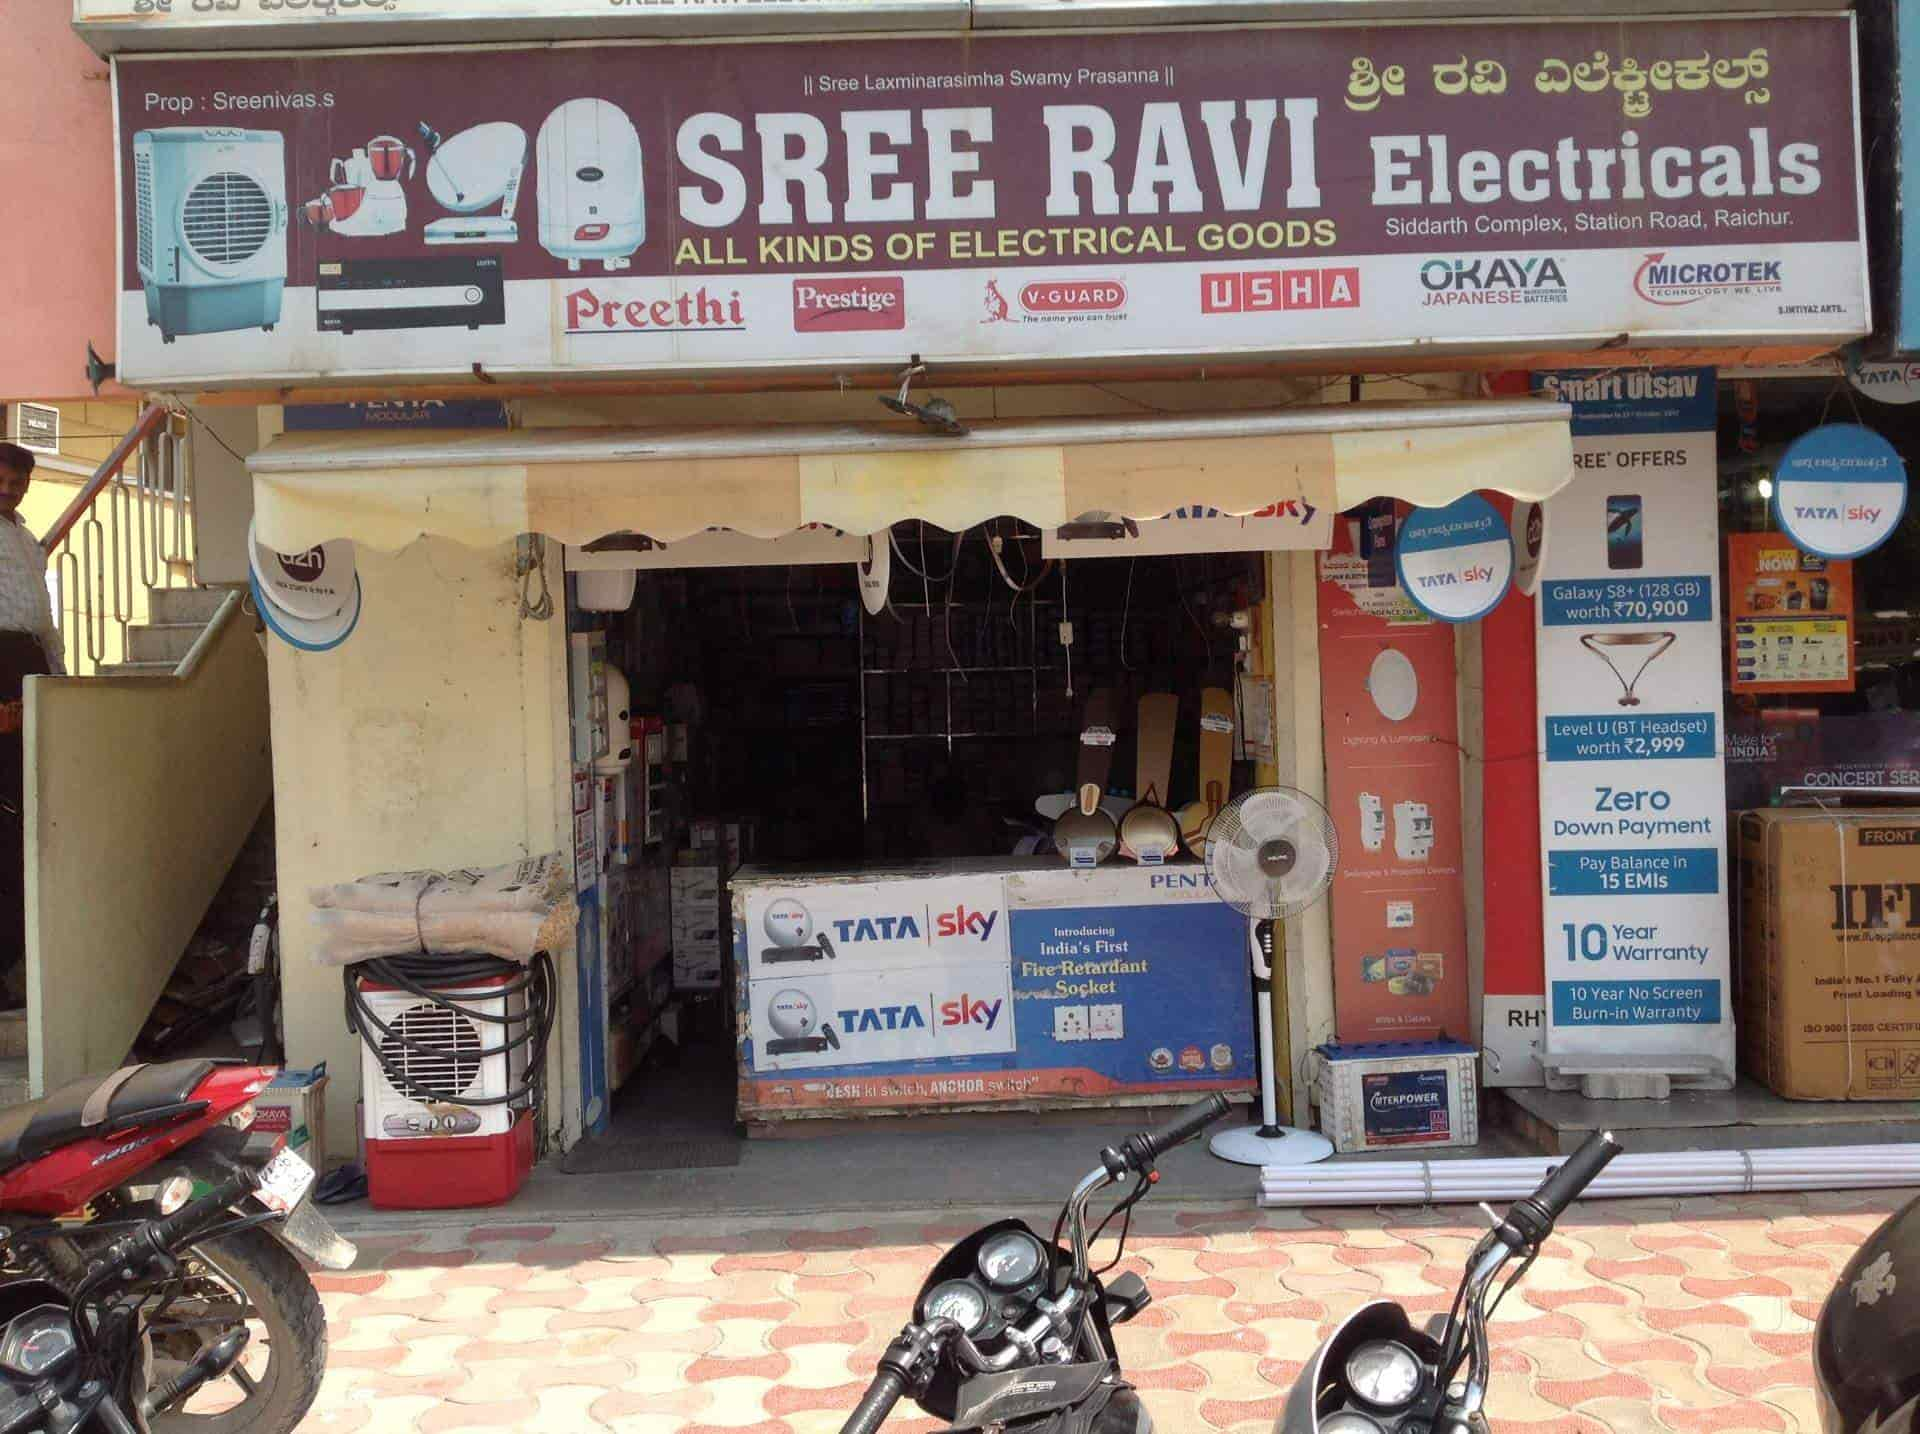 Sree Ravi Electricals, Station Road - Electronic Goods